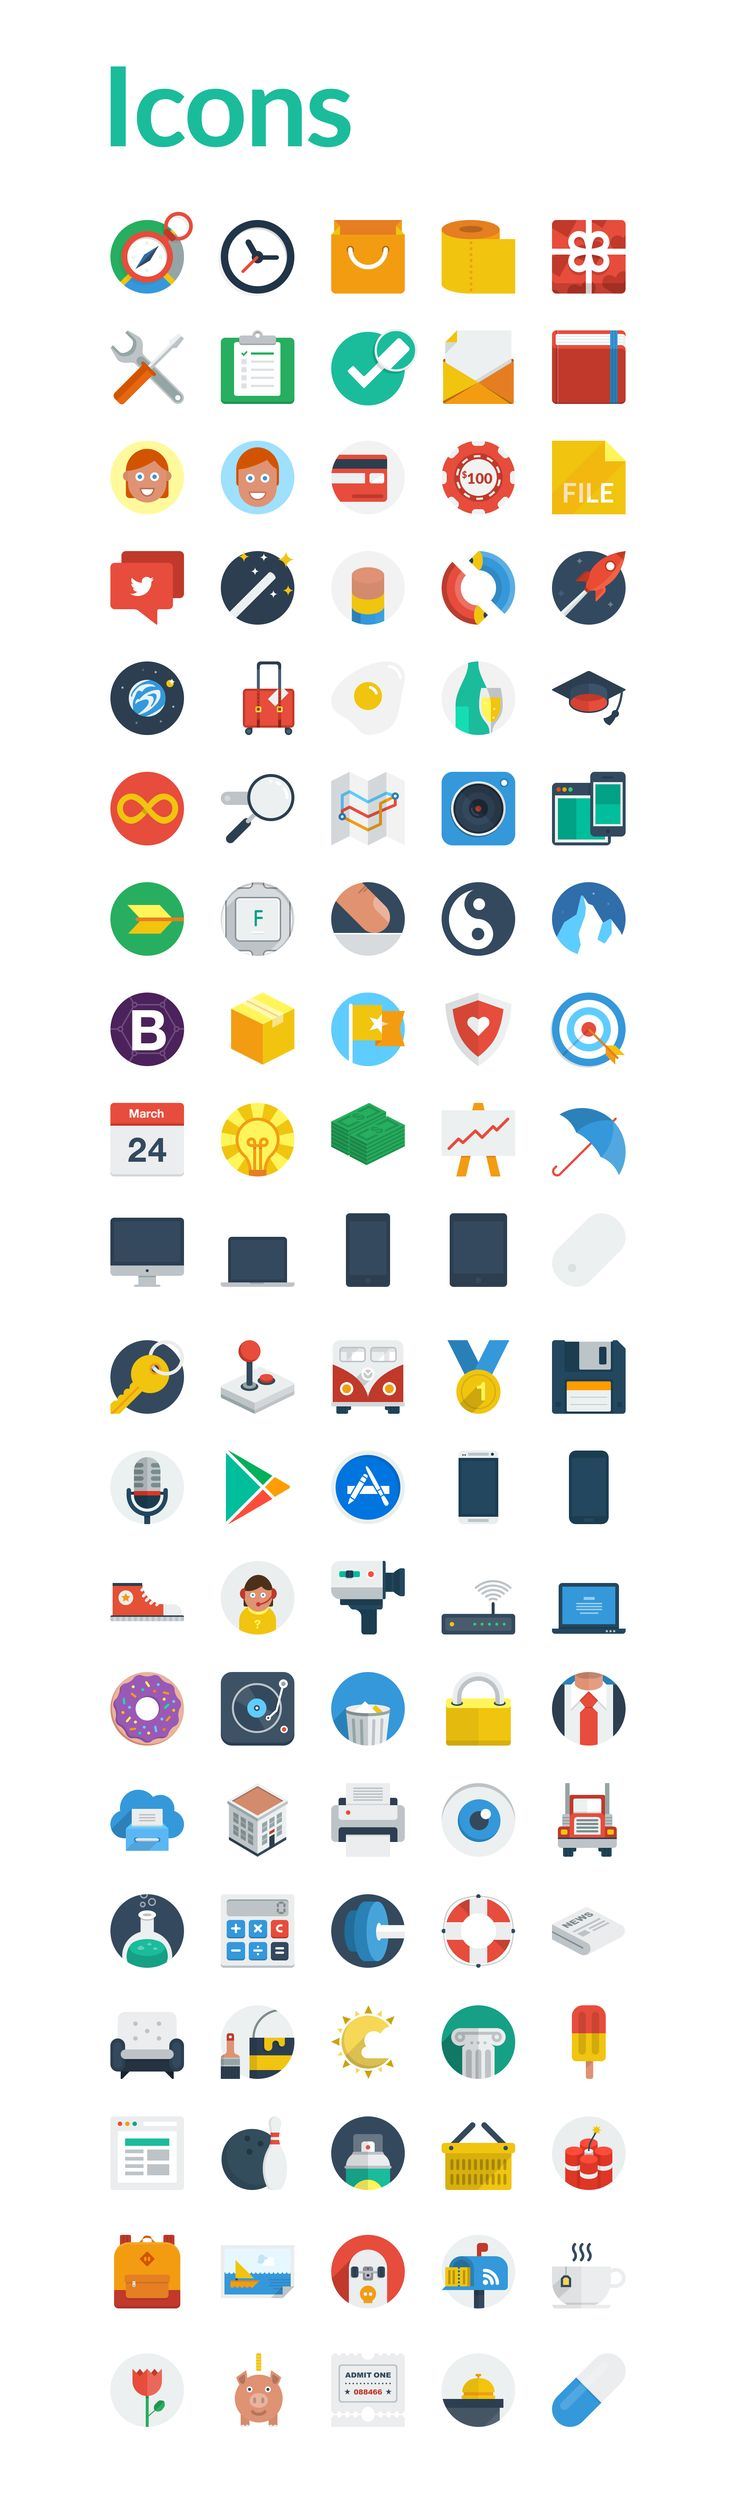 2.Icons-Pack@2x.png (2000×6812)